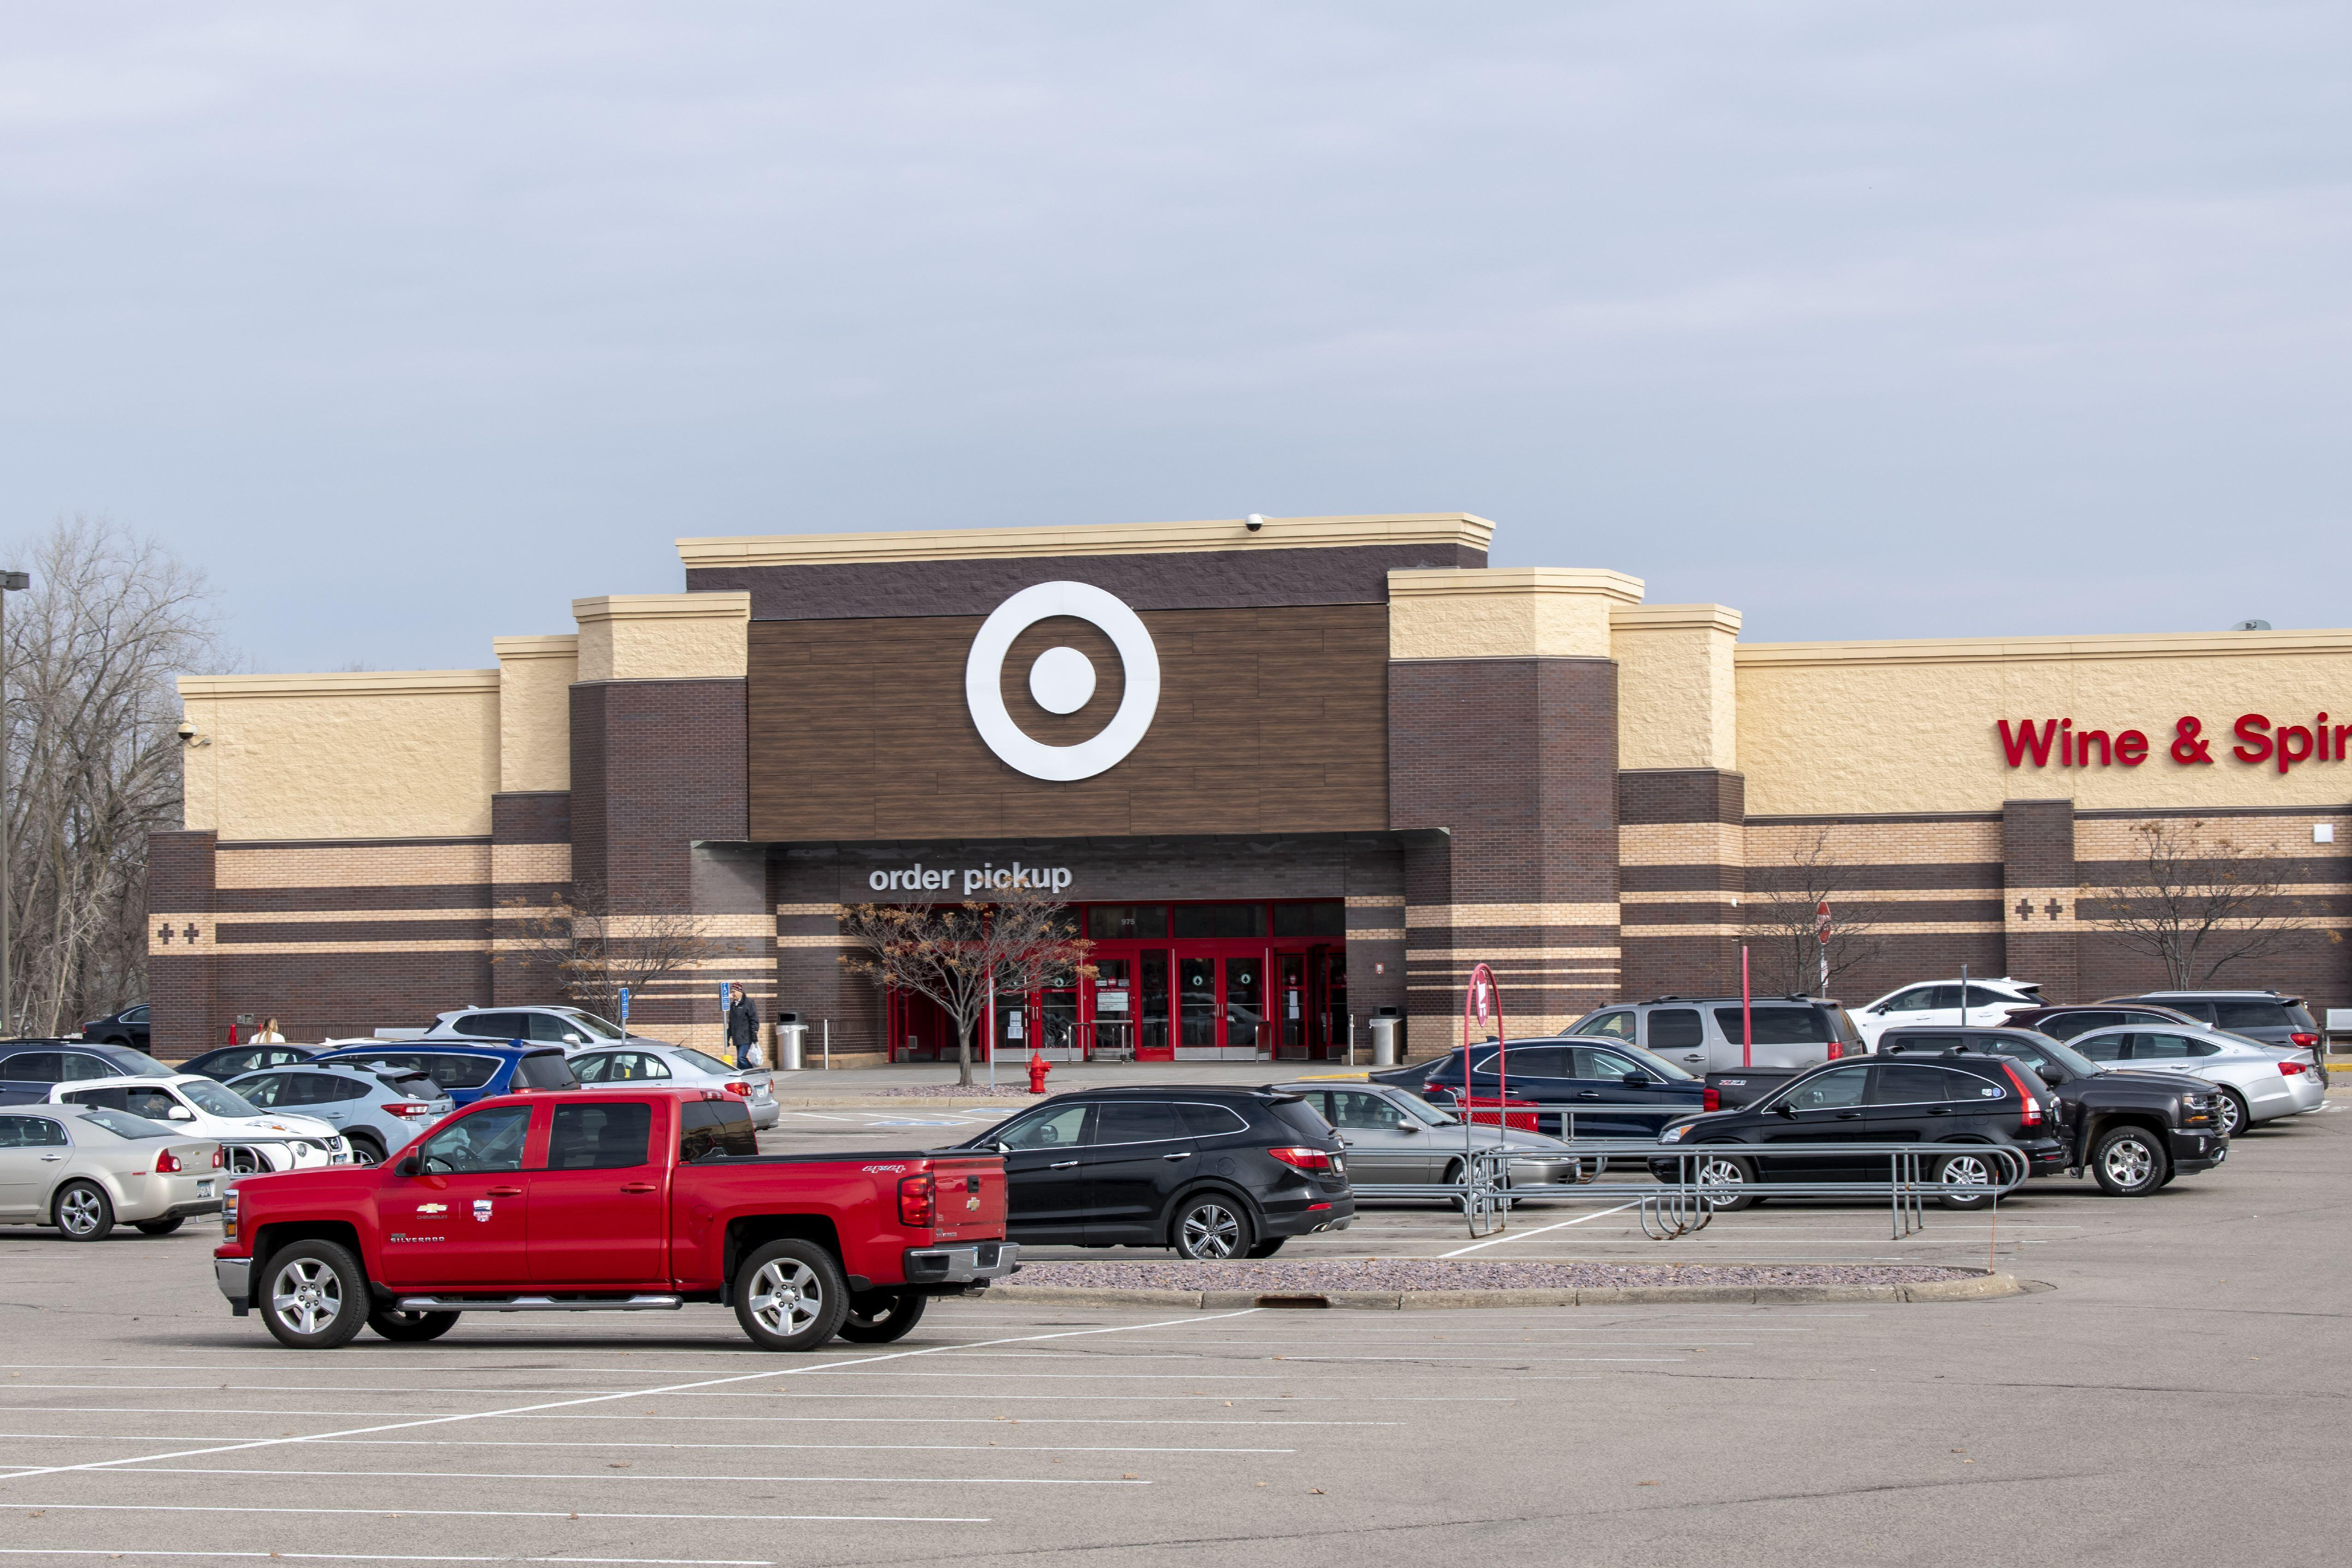 Target store and parking lot